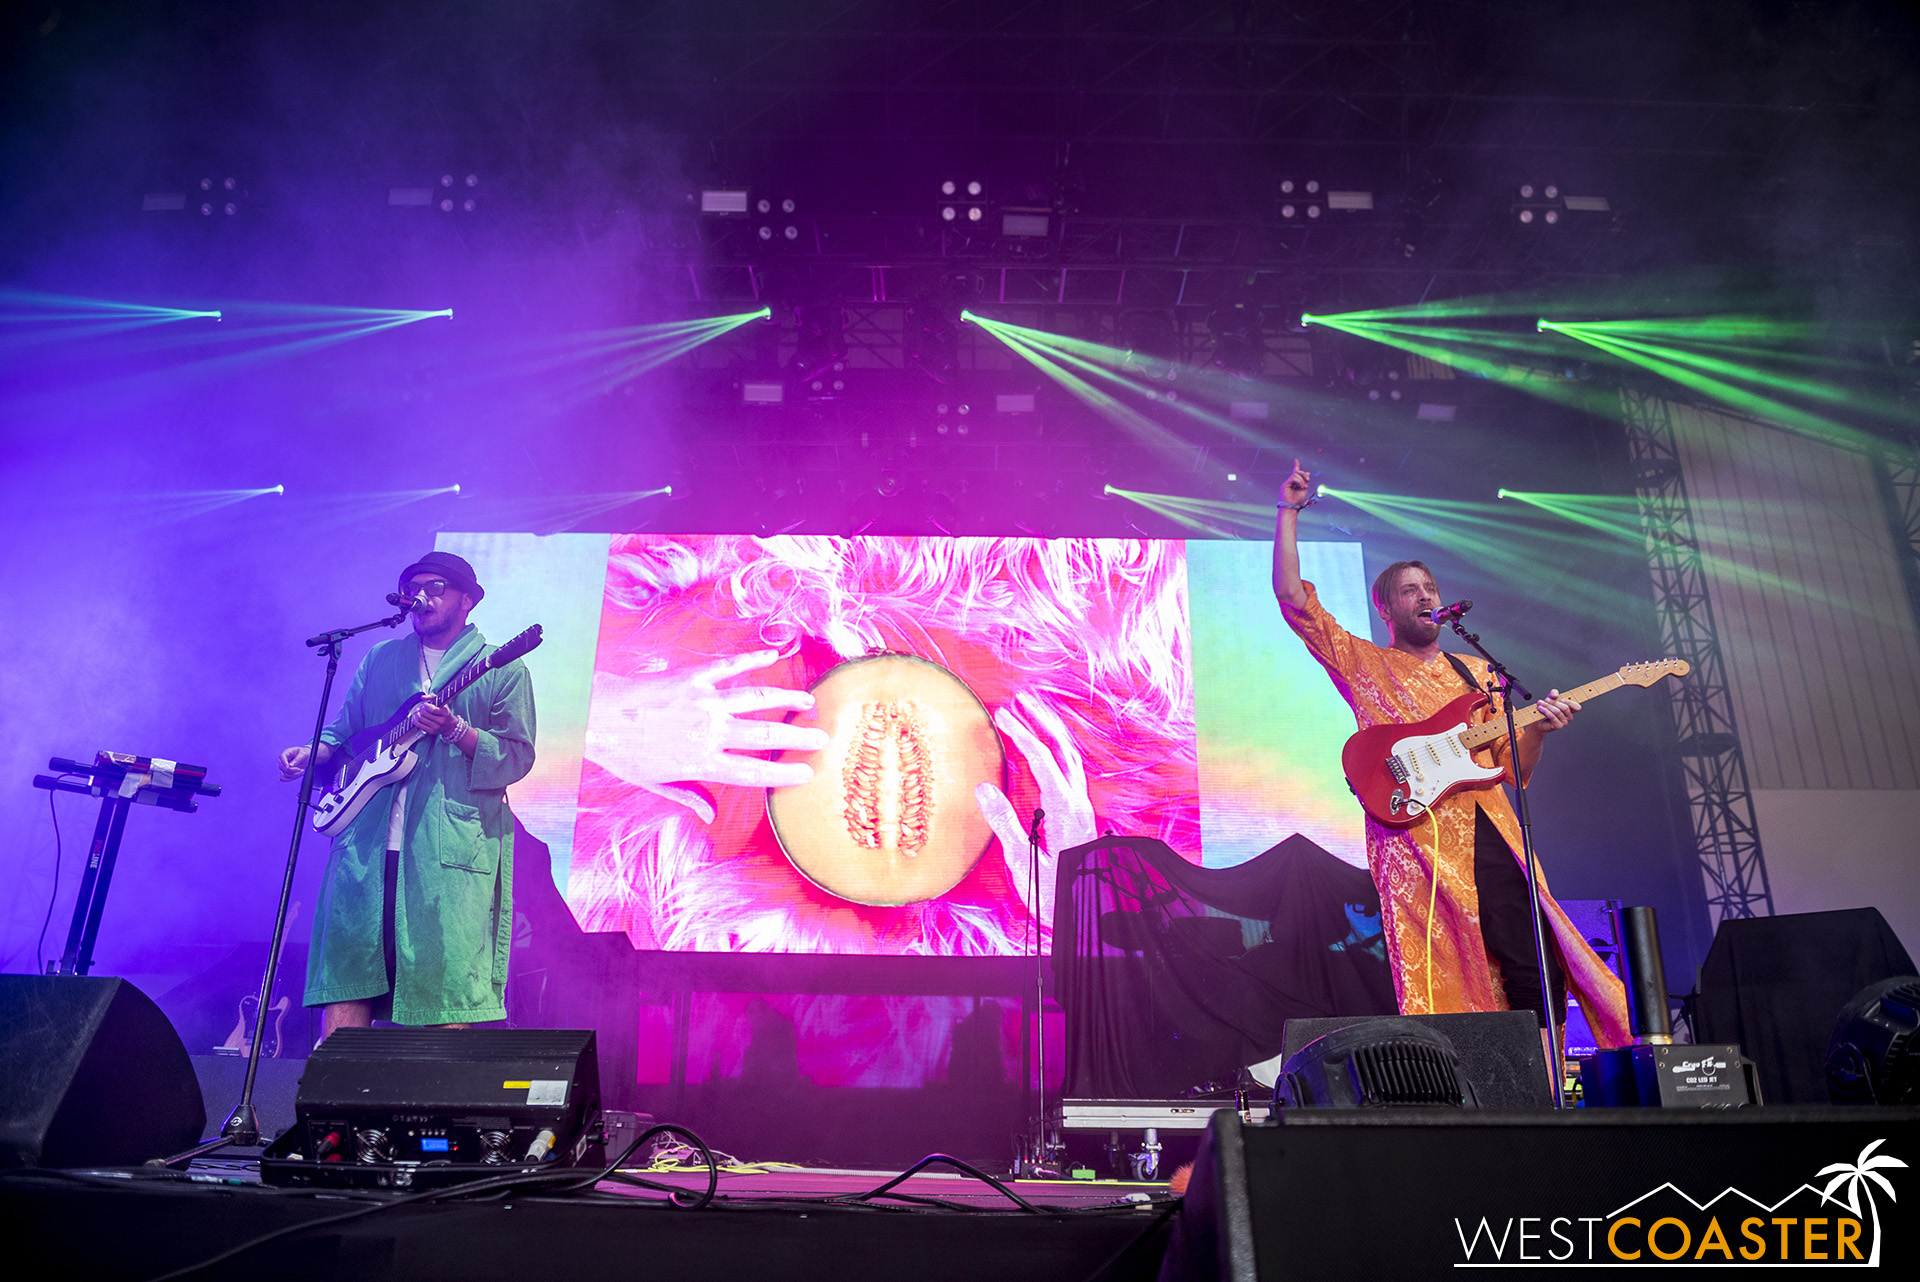 L.A.-based NVDES kicked off the main music line-up on Saturday with an Indietronic dance set.